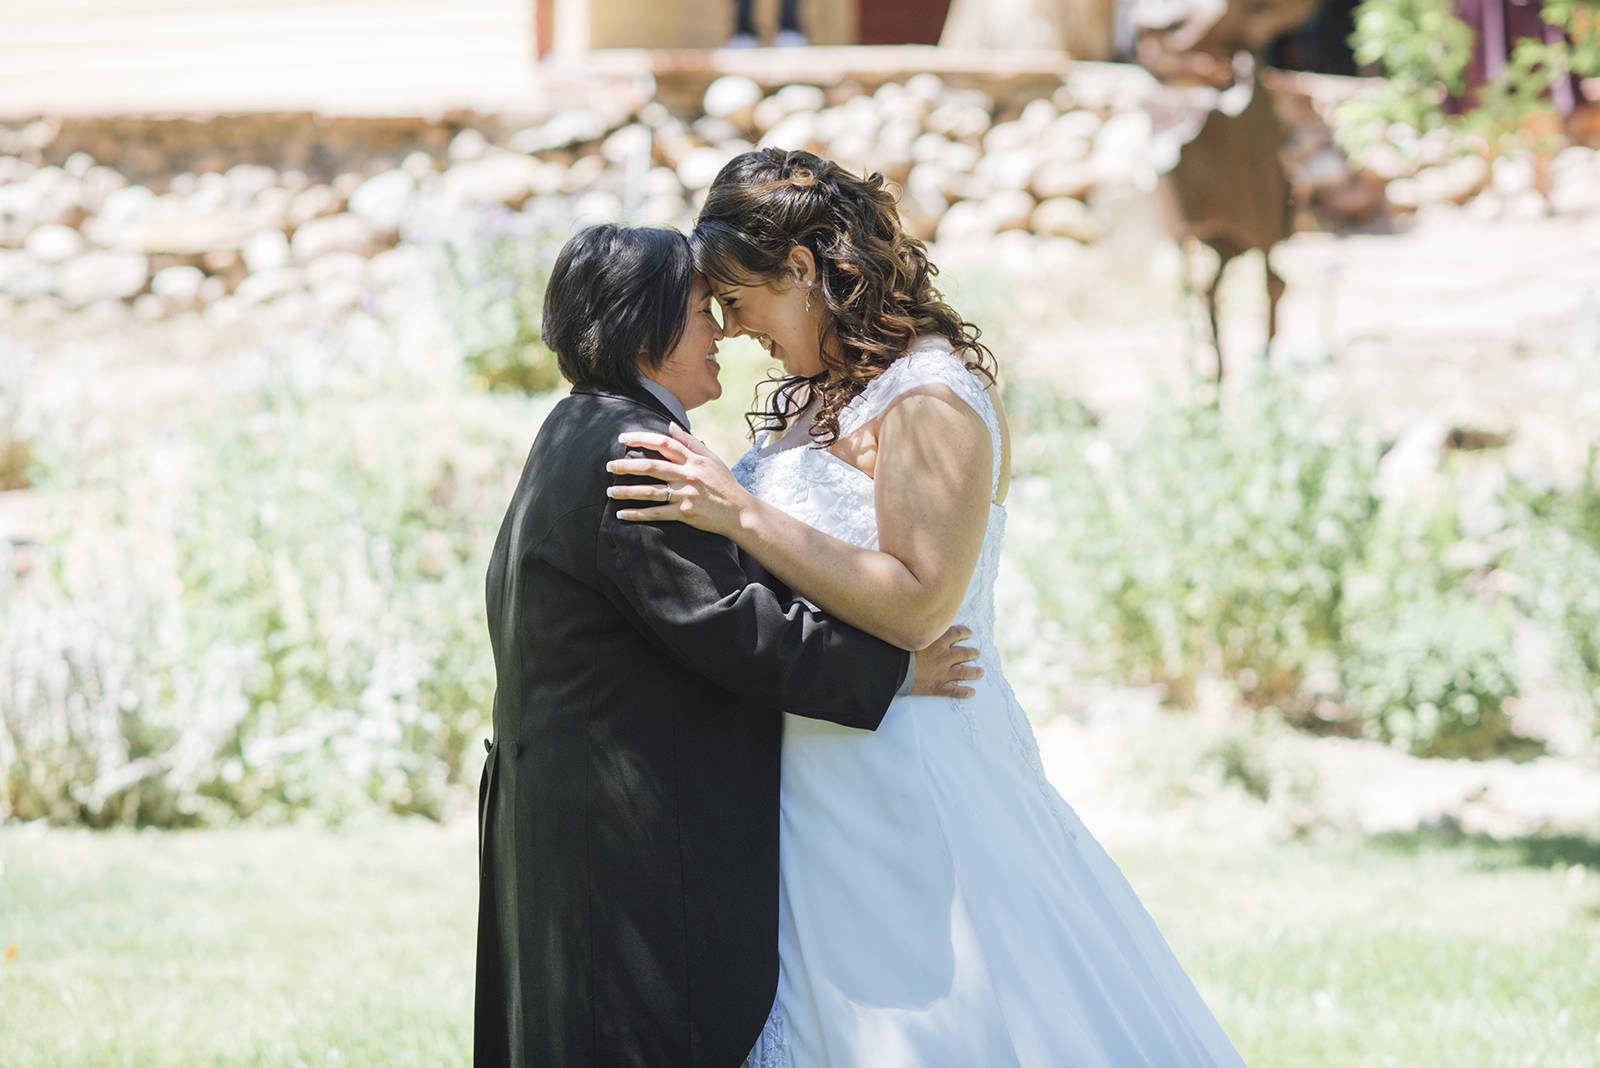 Carnefix Photography | Denver Photography | Lesbian Wedding Photography | Gay Wedding Photography | LGBT Wedding Photography